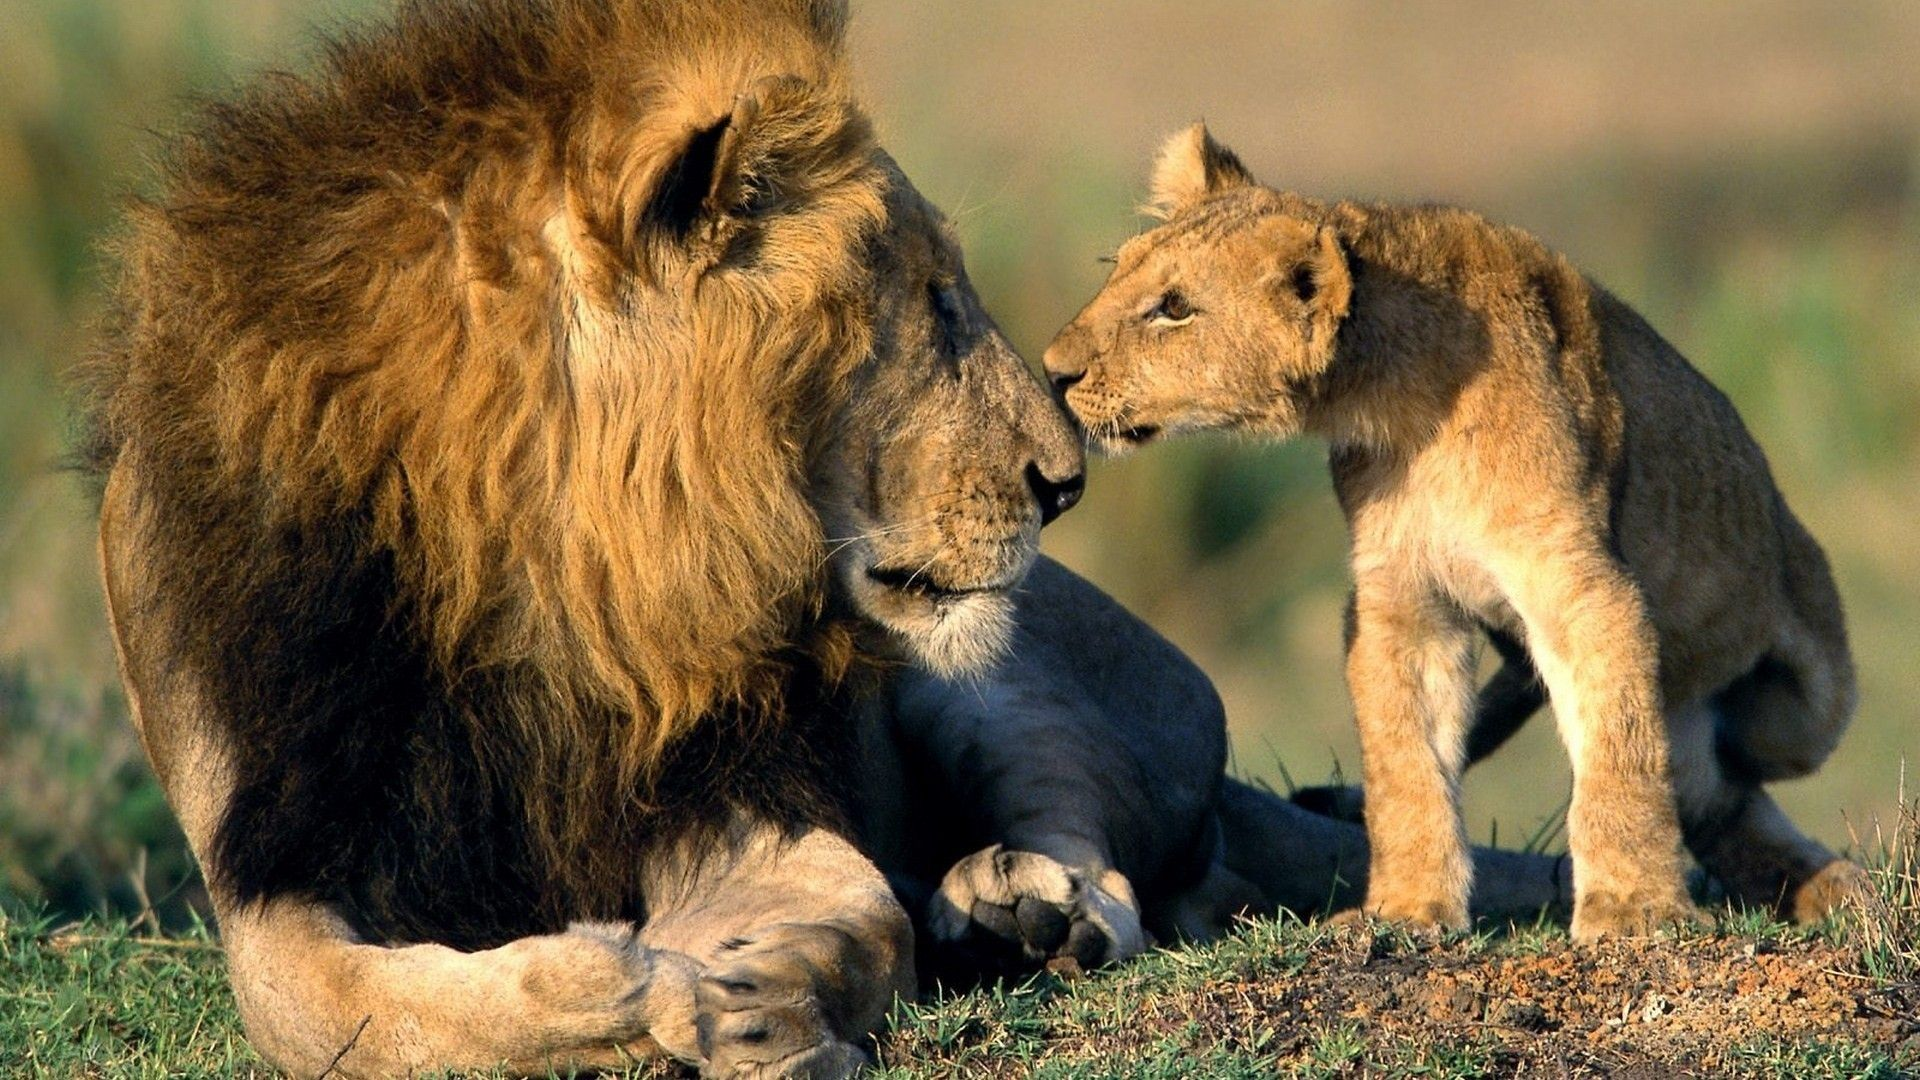 Lion With Cute Cub Hd Wallpaper Pets Animals Cute Animals Cats